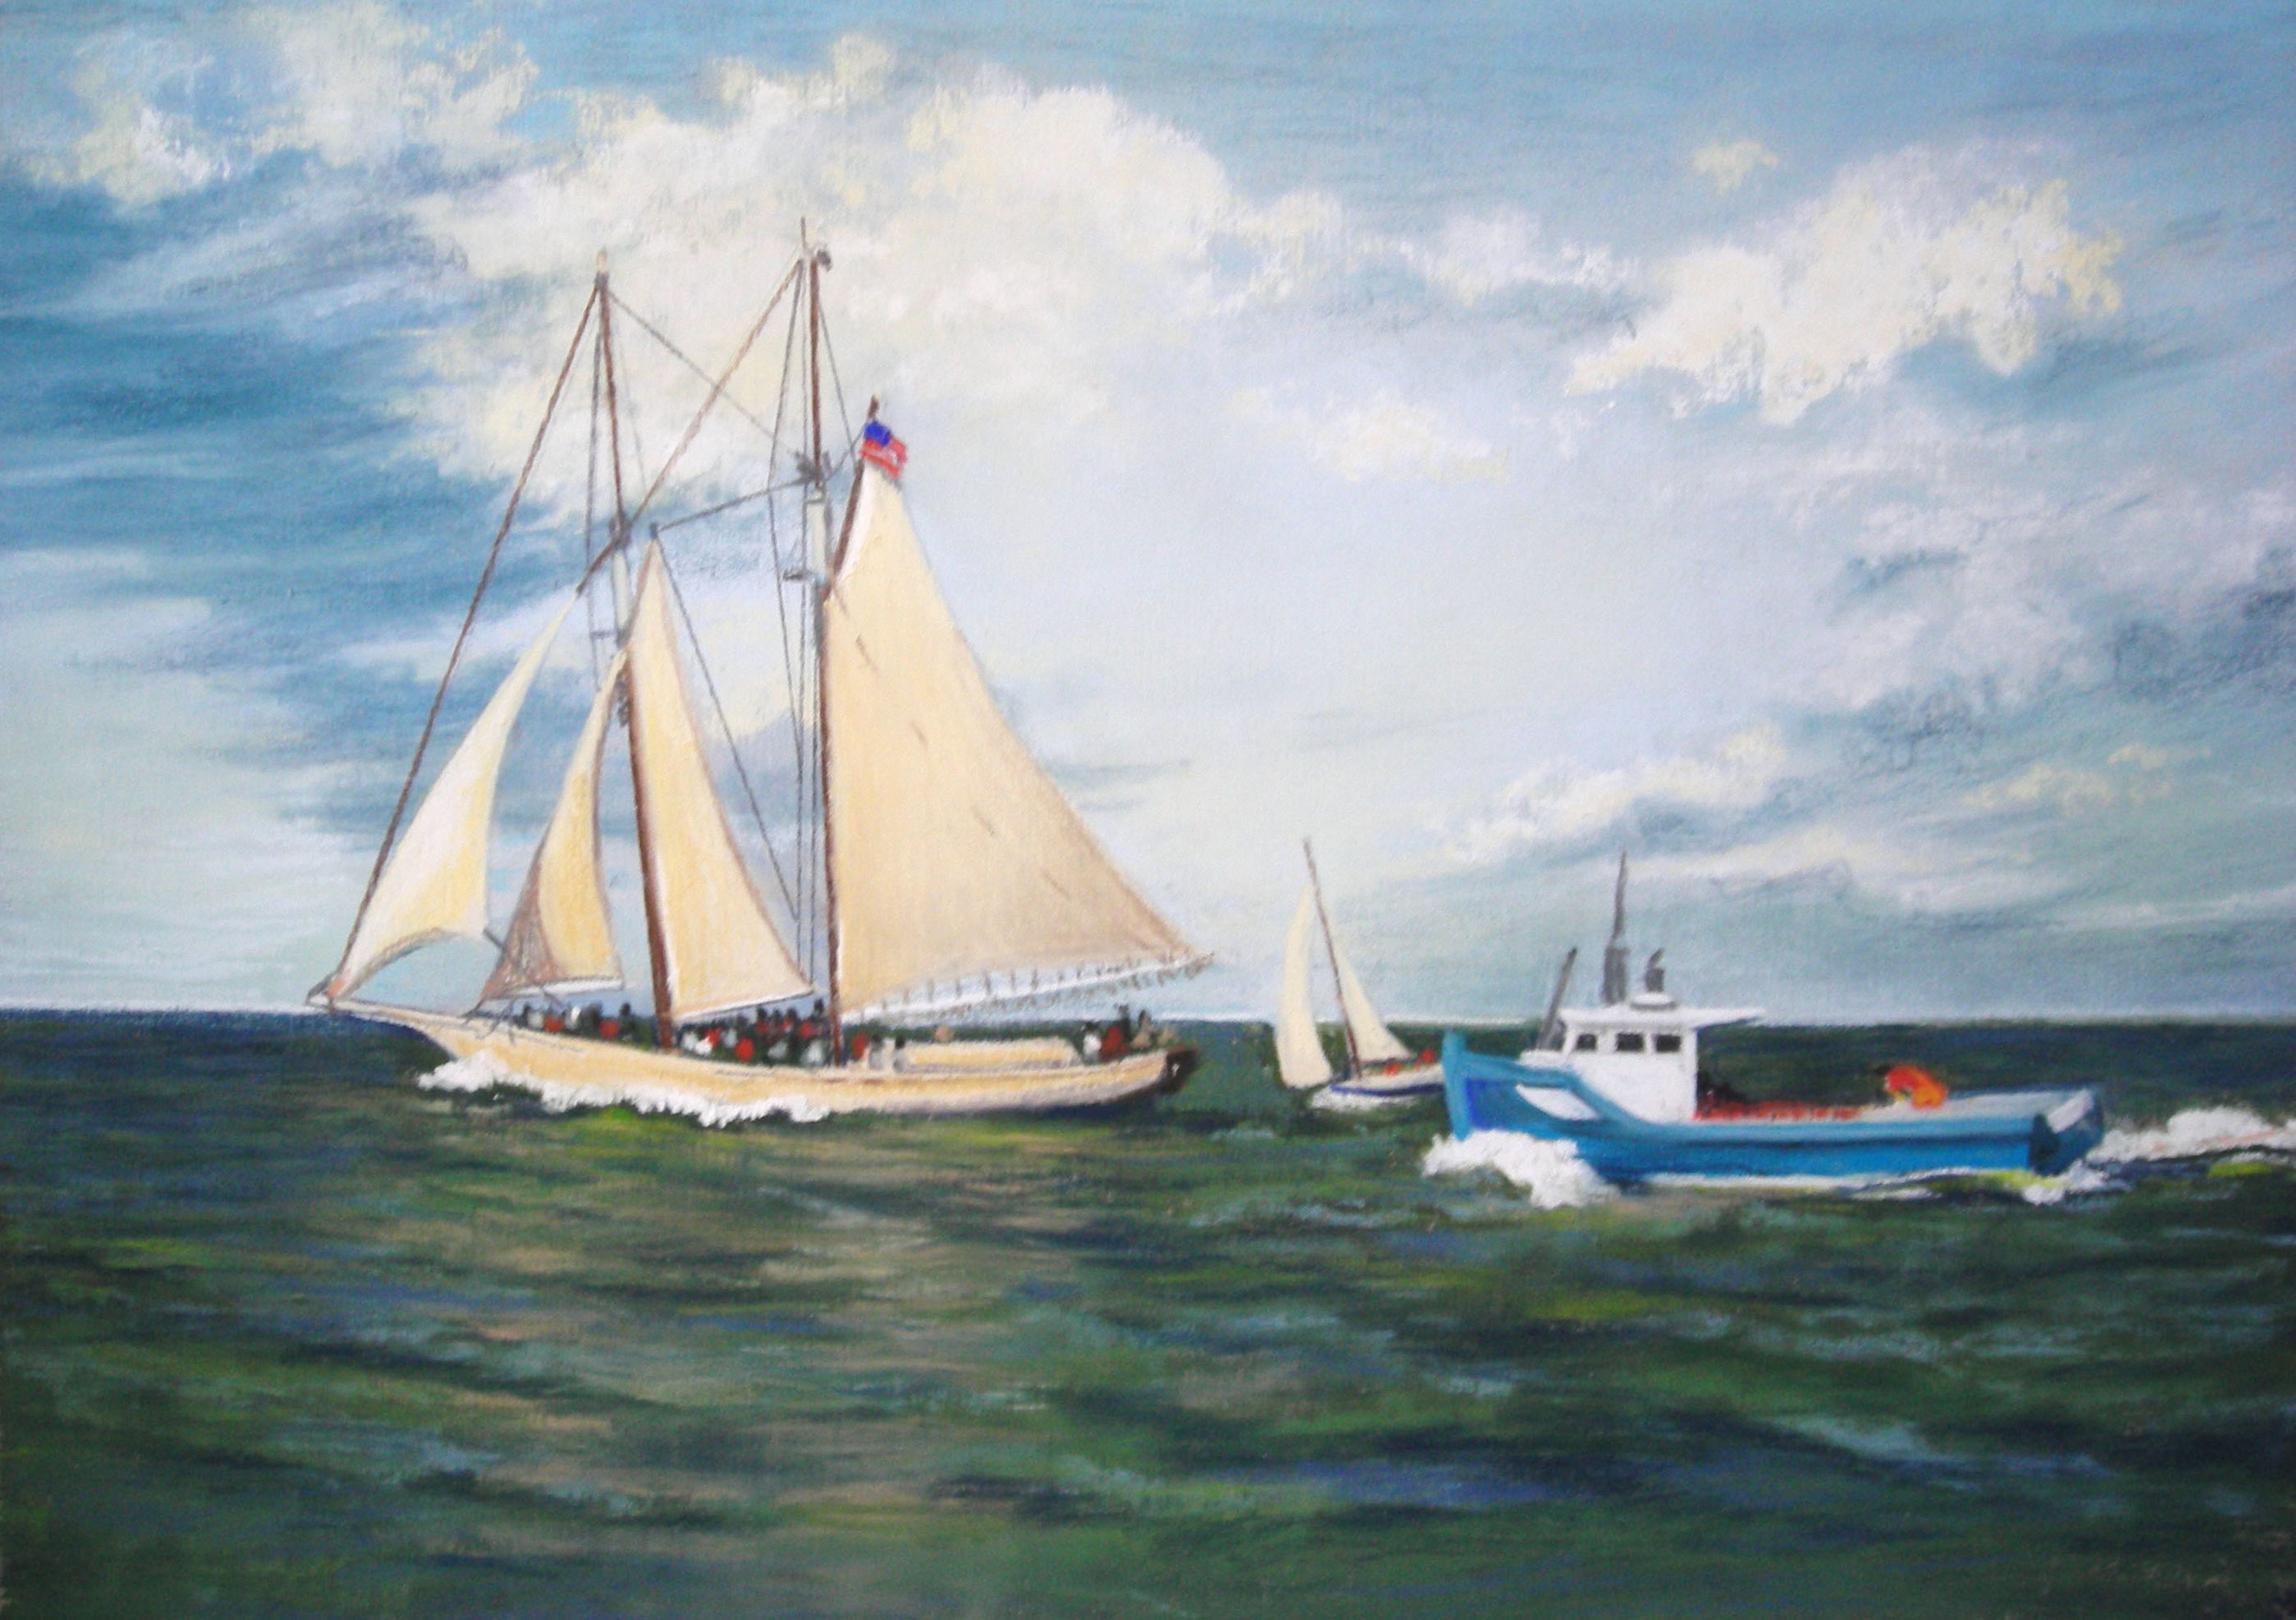 Great Sailing Day  — 16x20 matted $32